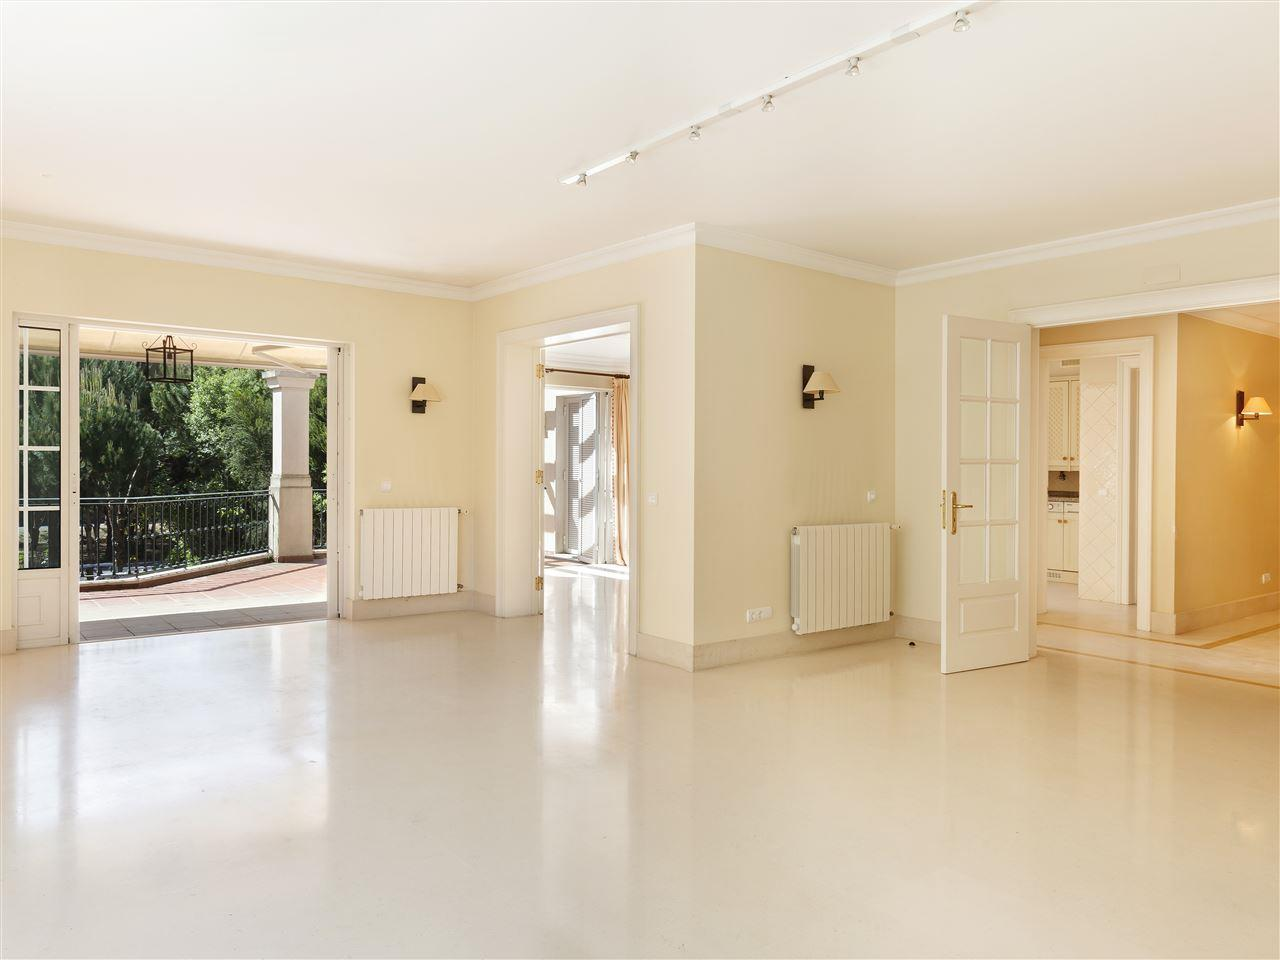 Property For Sale at Flat, 3 bedrooms, for Sale